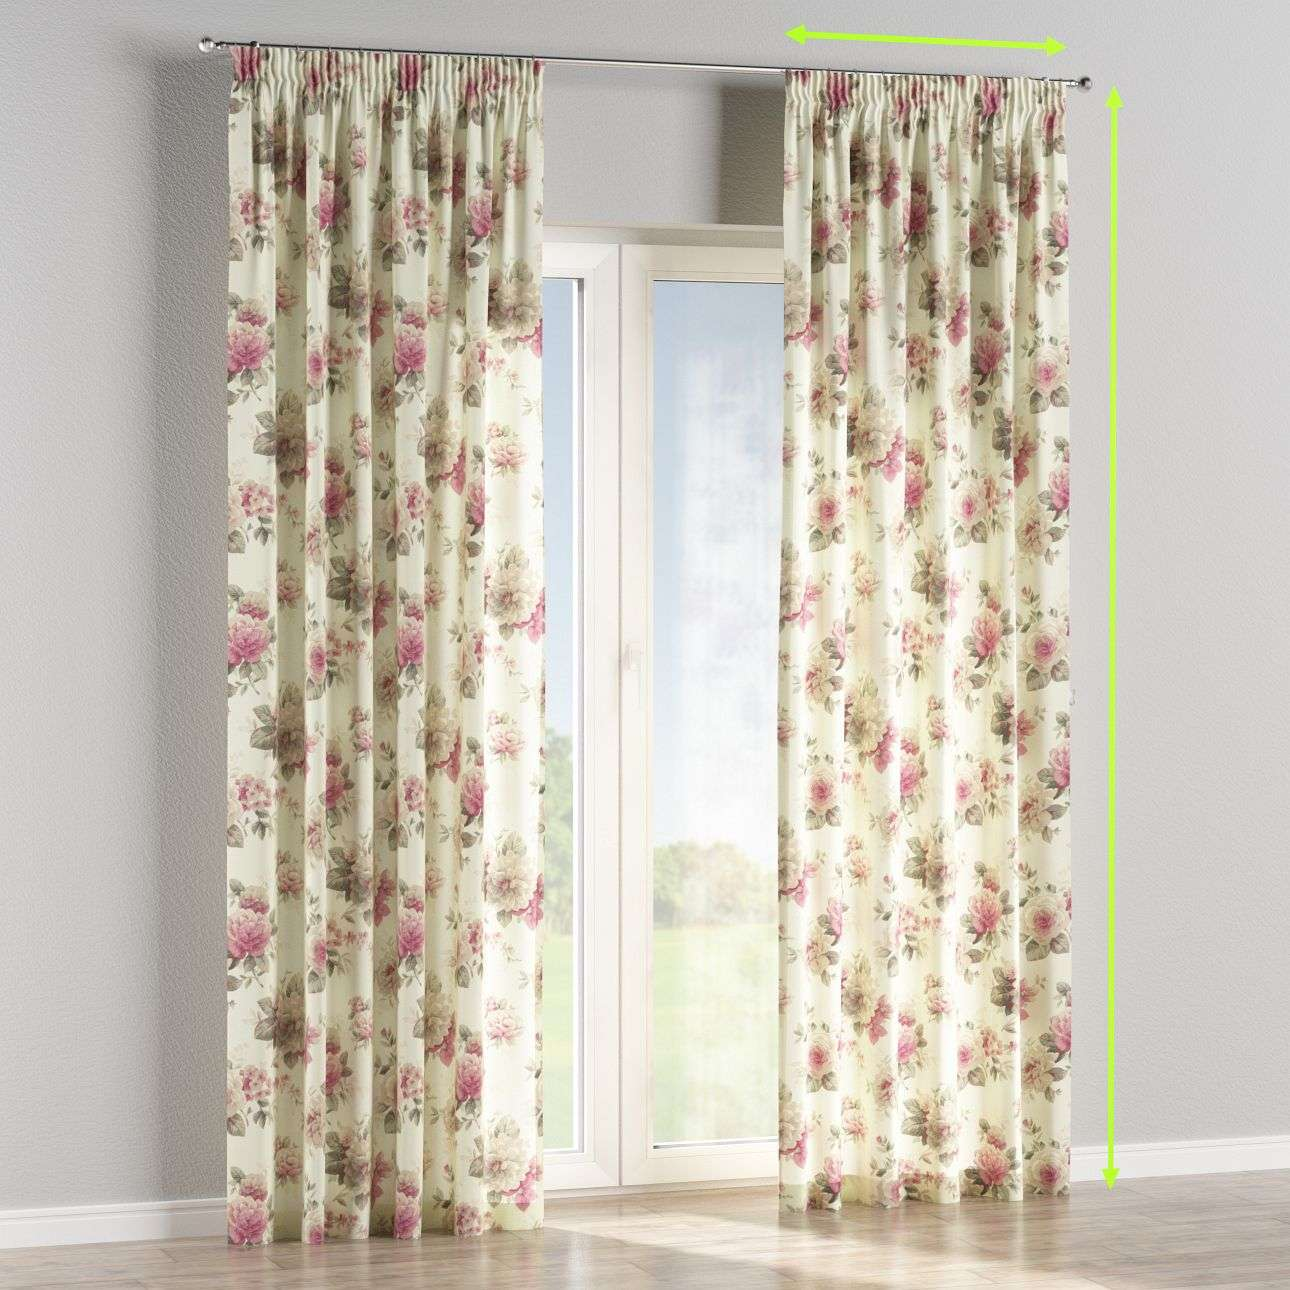 Pencil pleat curtain in collection Londres, fabric: 141-07